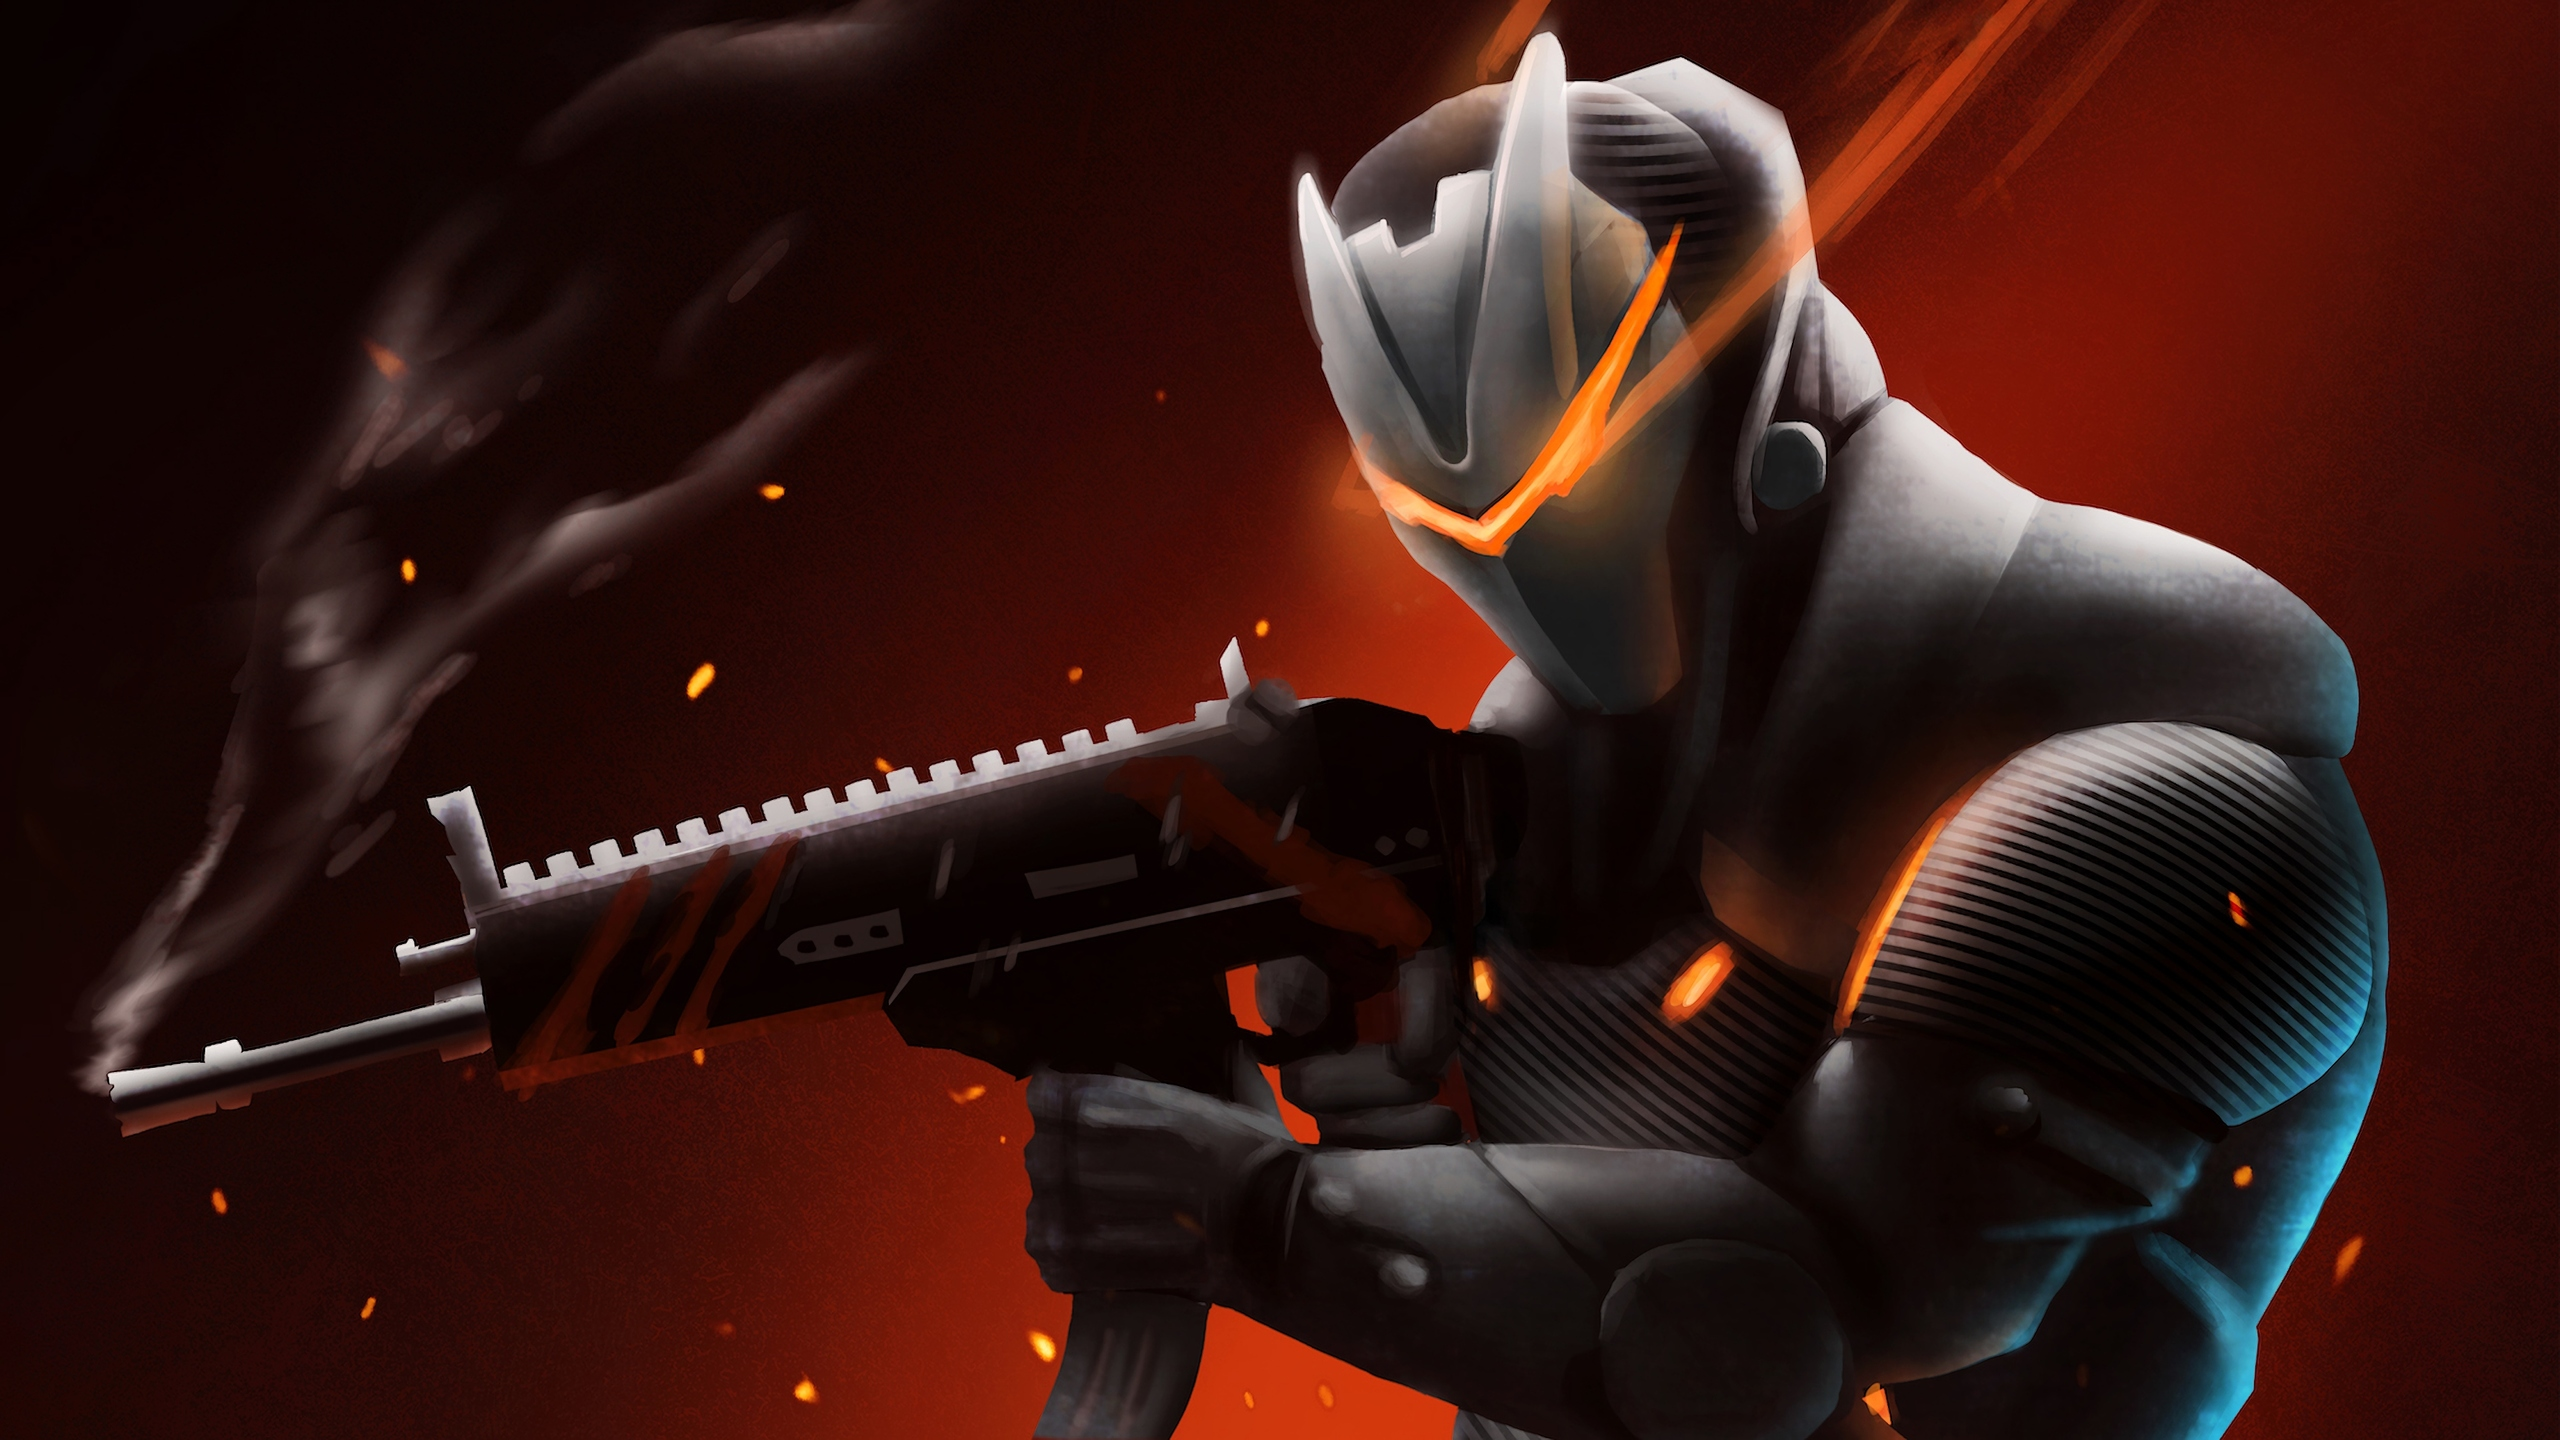 2560x1440 Omega With Rifle Fortnite Battle Royale 1440p